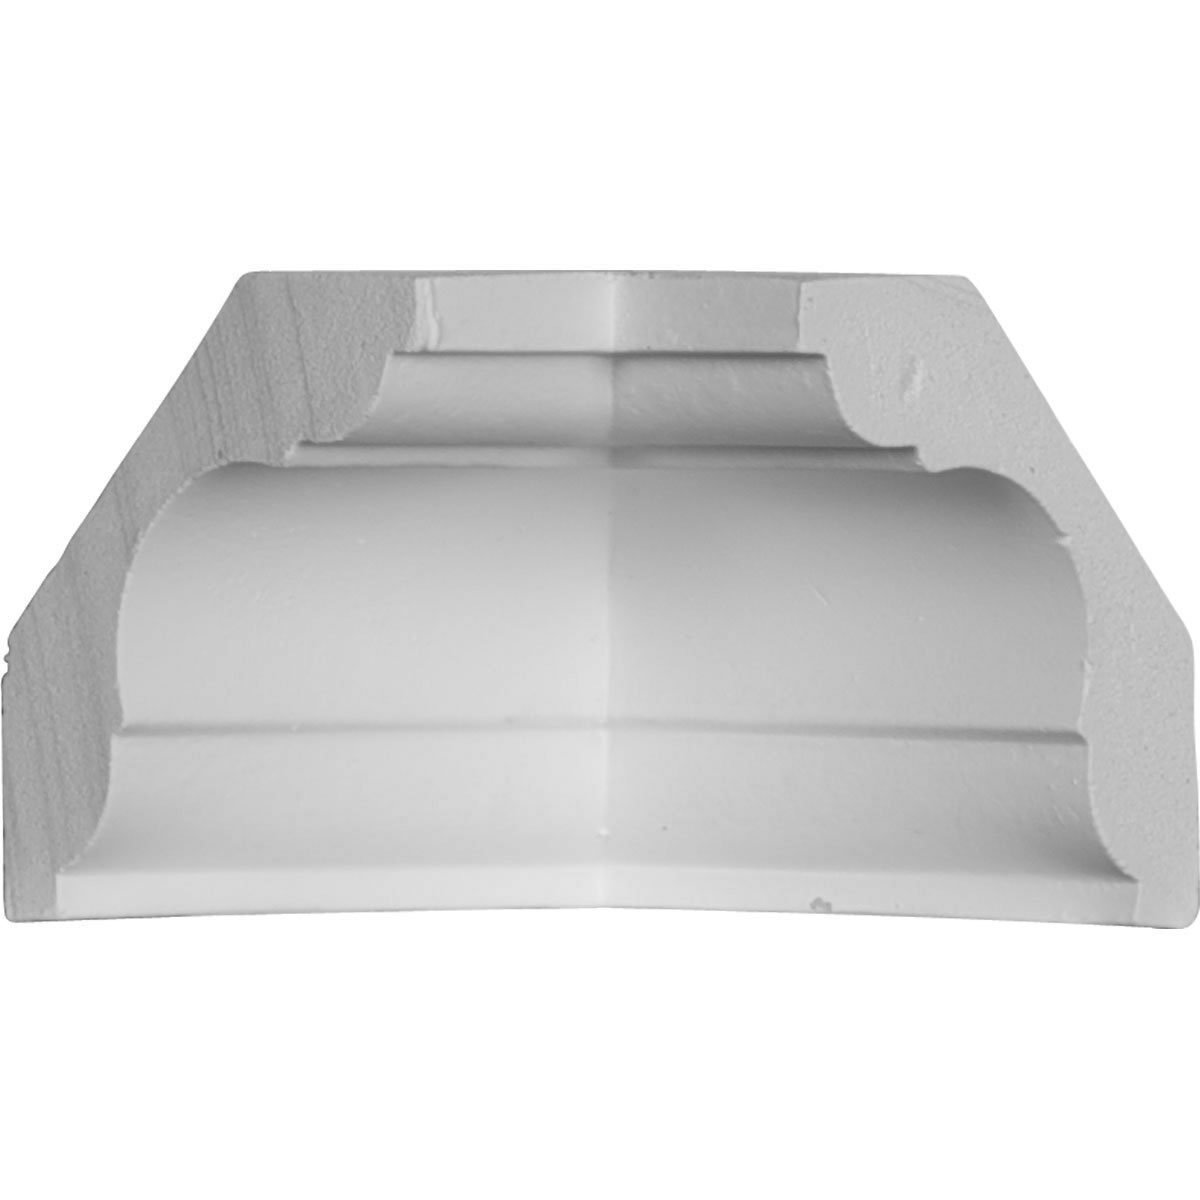 2 1//4H x 2 1//4P x 3 1//4F x 94 1//2L Jefferson Traditional Smooth Crown Moulding 2-Pack